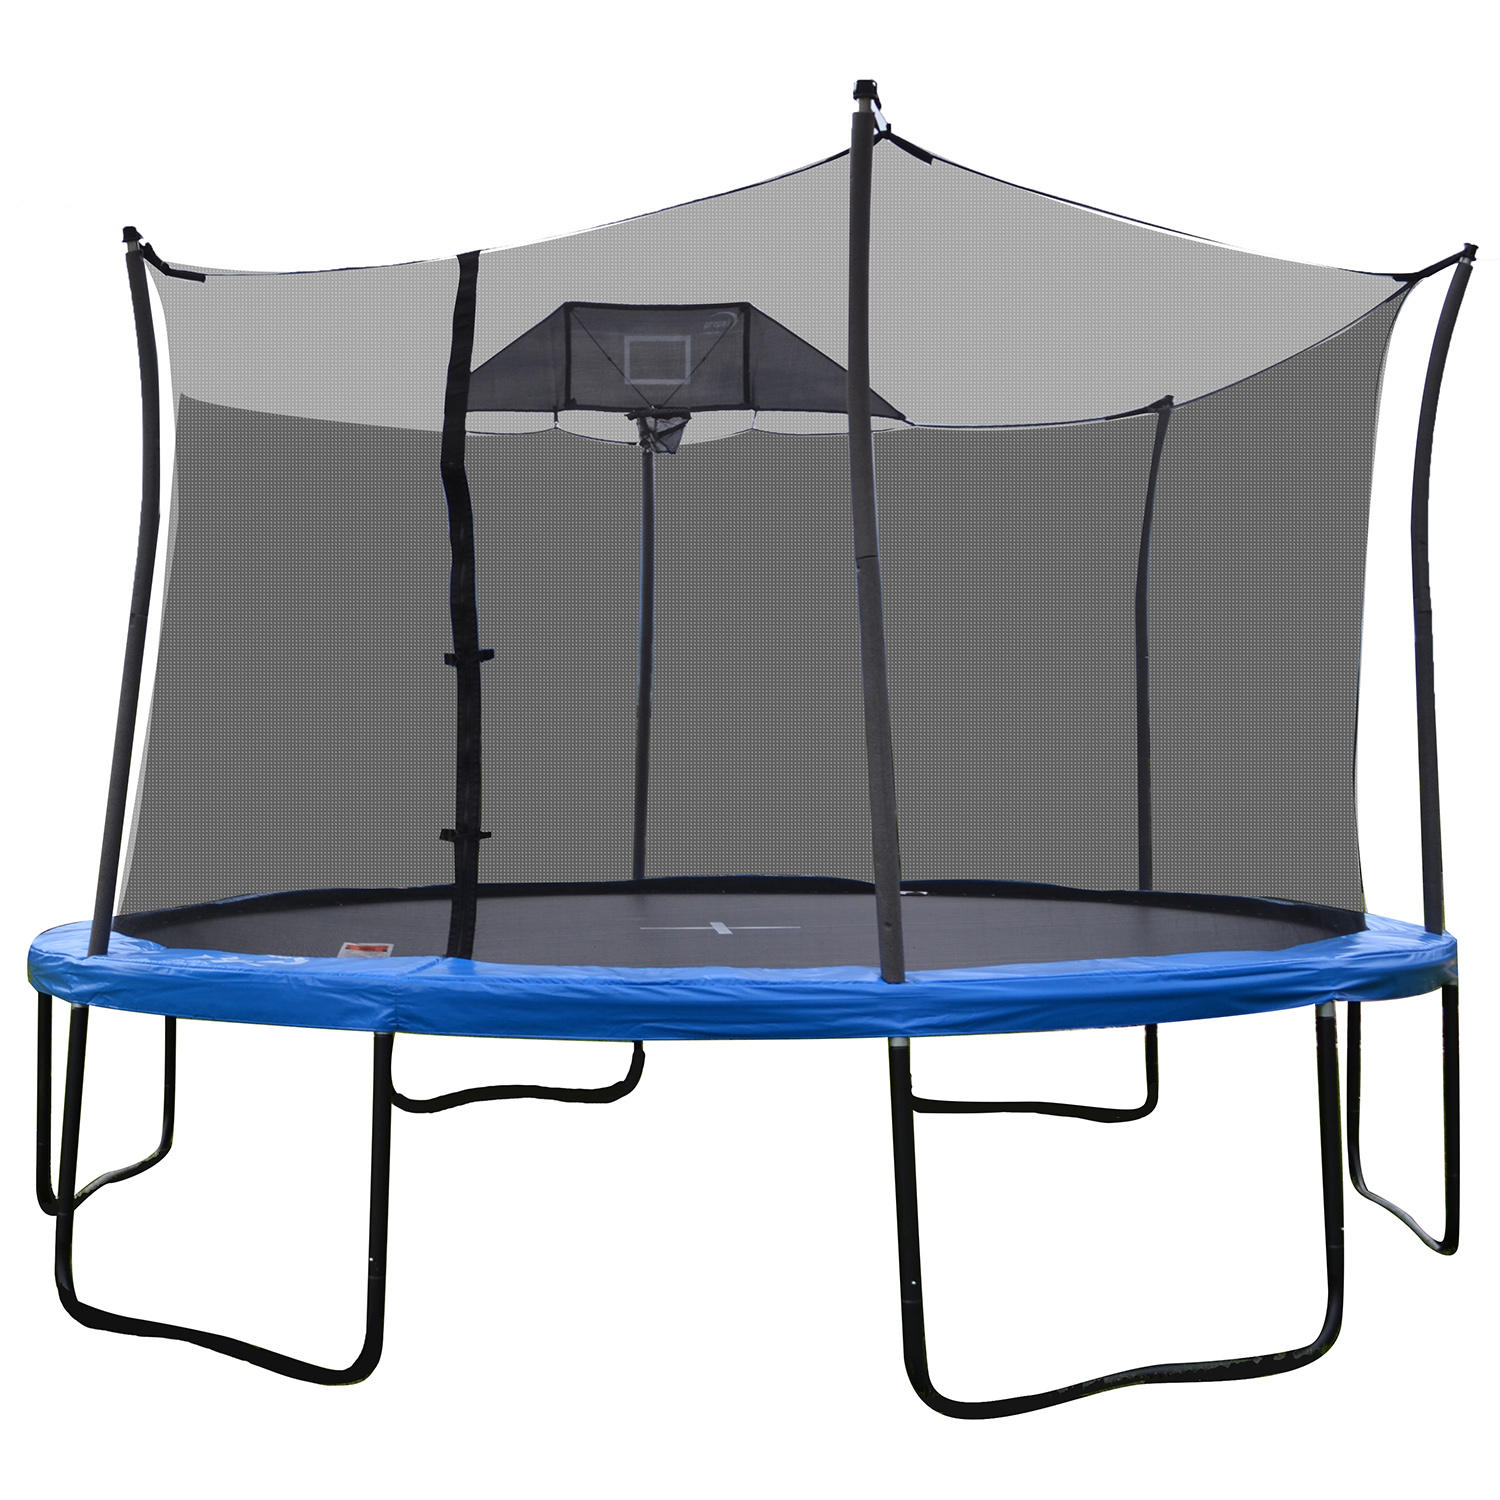 Propel 14′ Heavy-Duty Pro Trampoline With Basketball Hoop